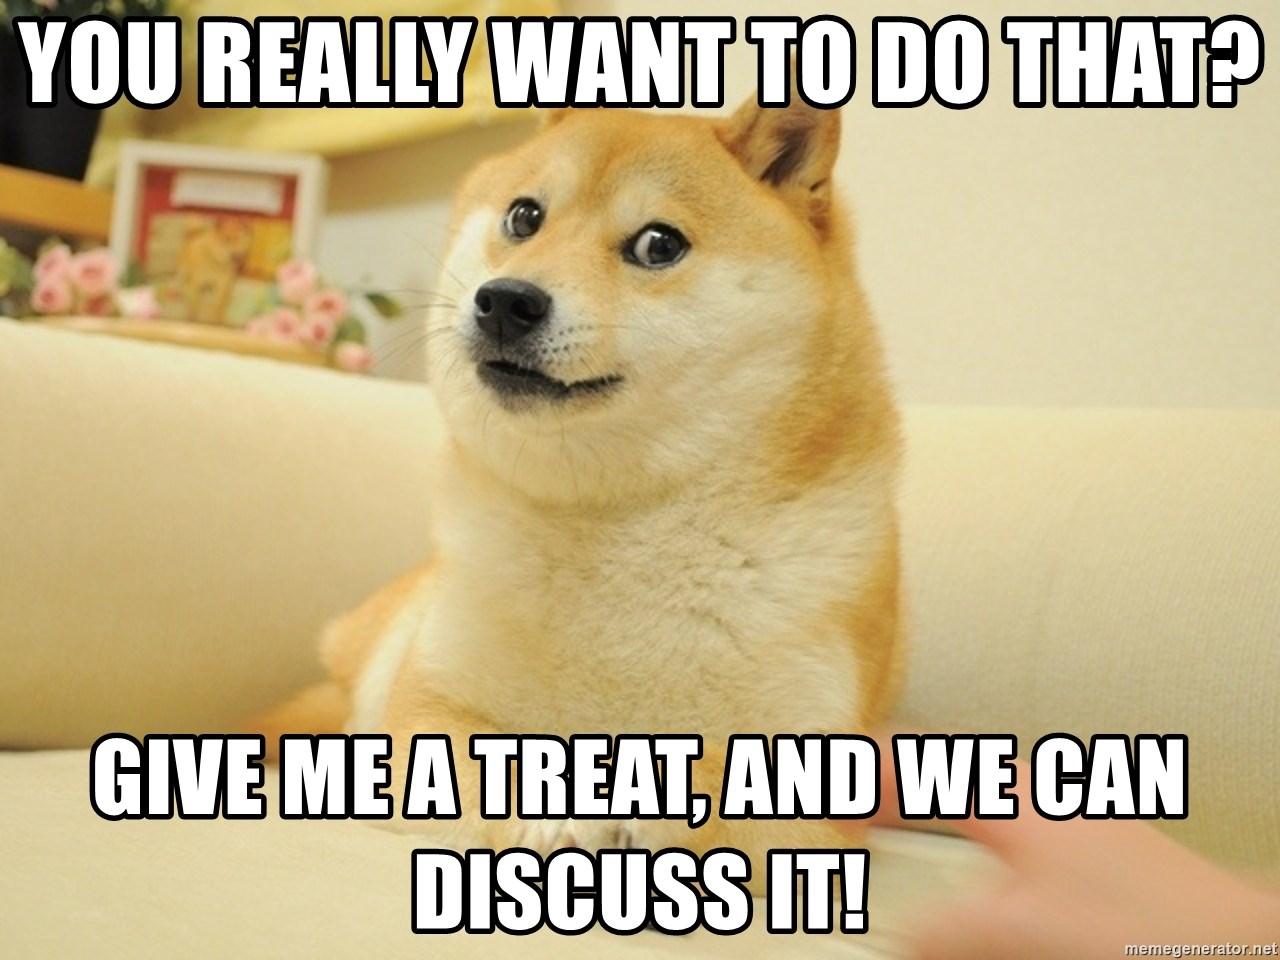 so doge - You really want to do that? Give me a treat, and we can discuss it!